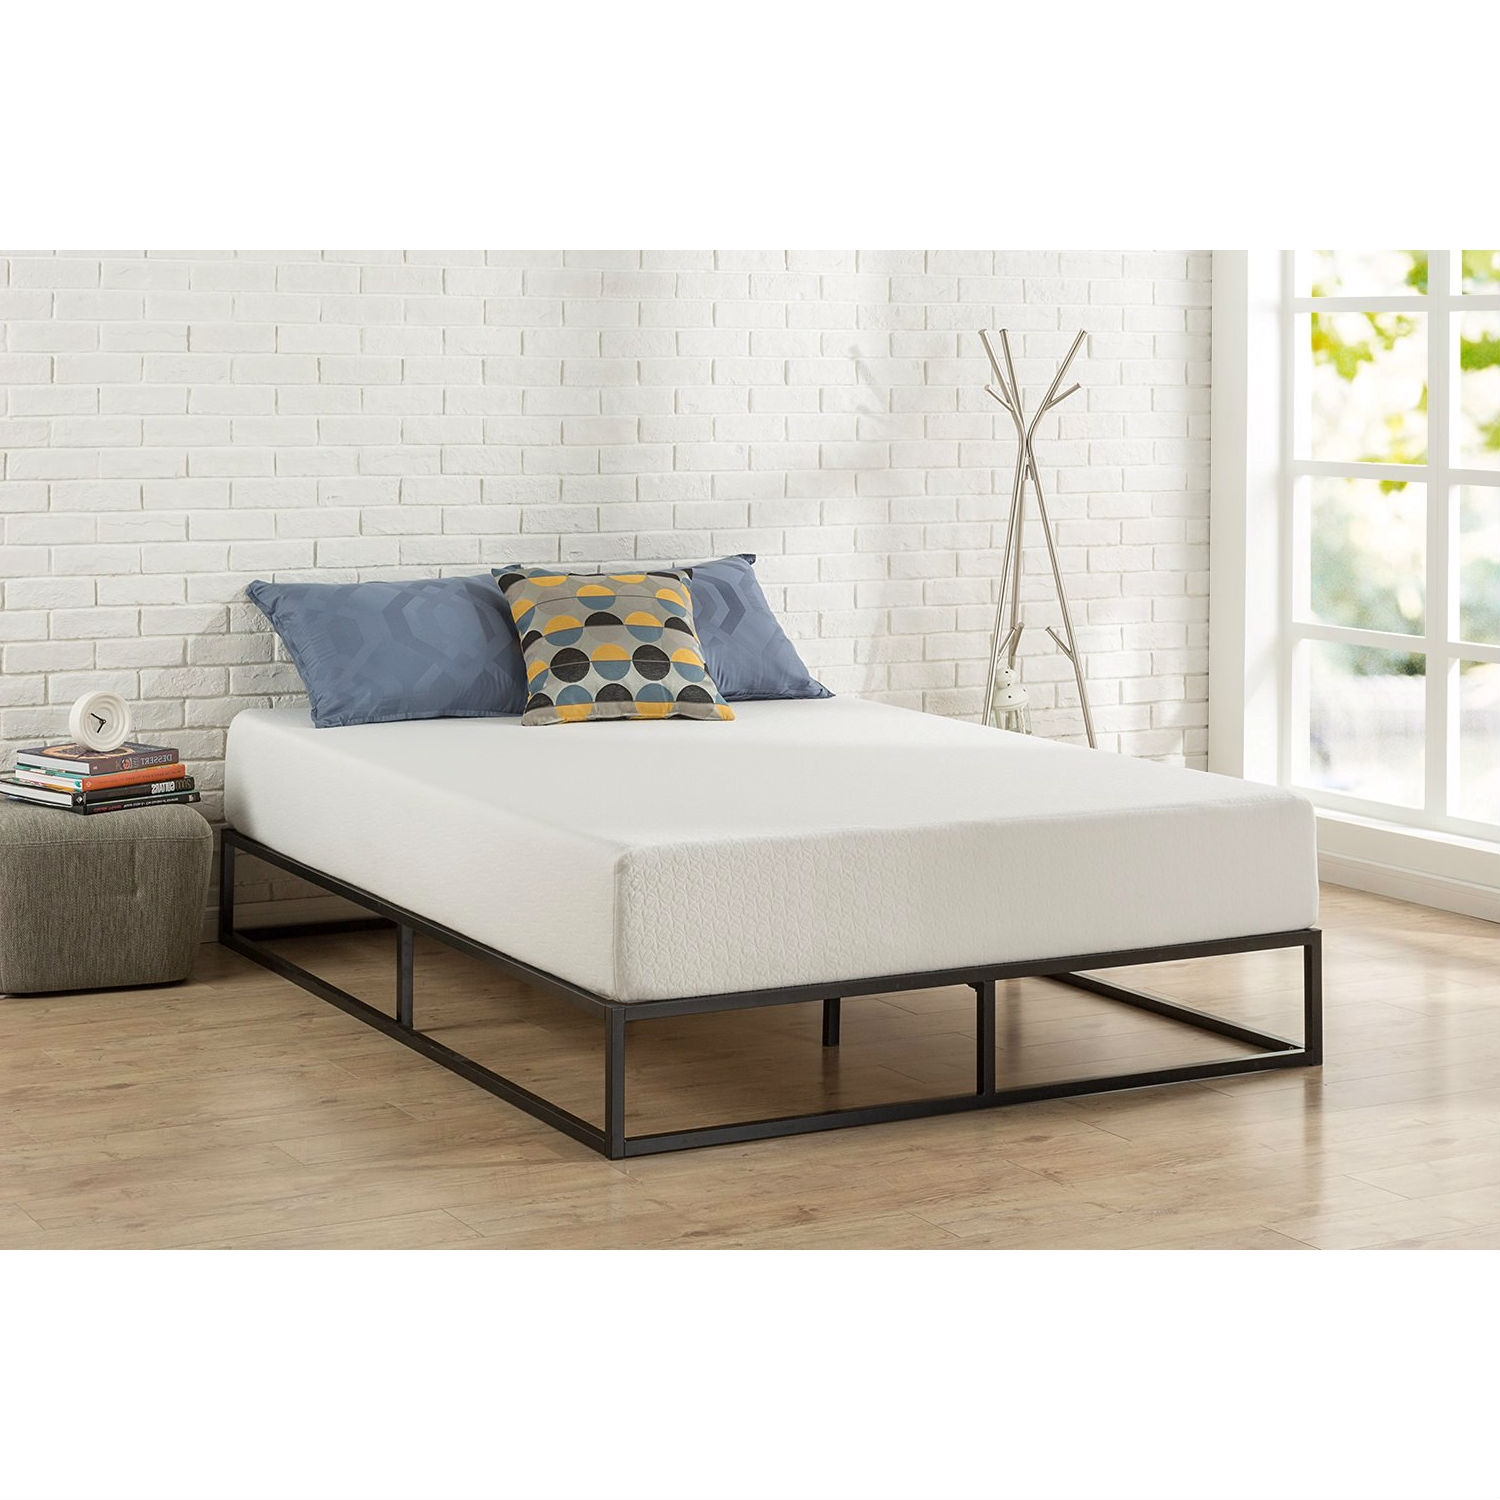 twin size 10 inch low profile modern metal platform bed frame with wooden slats - Low Profile Twin Bed Frame